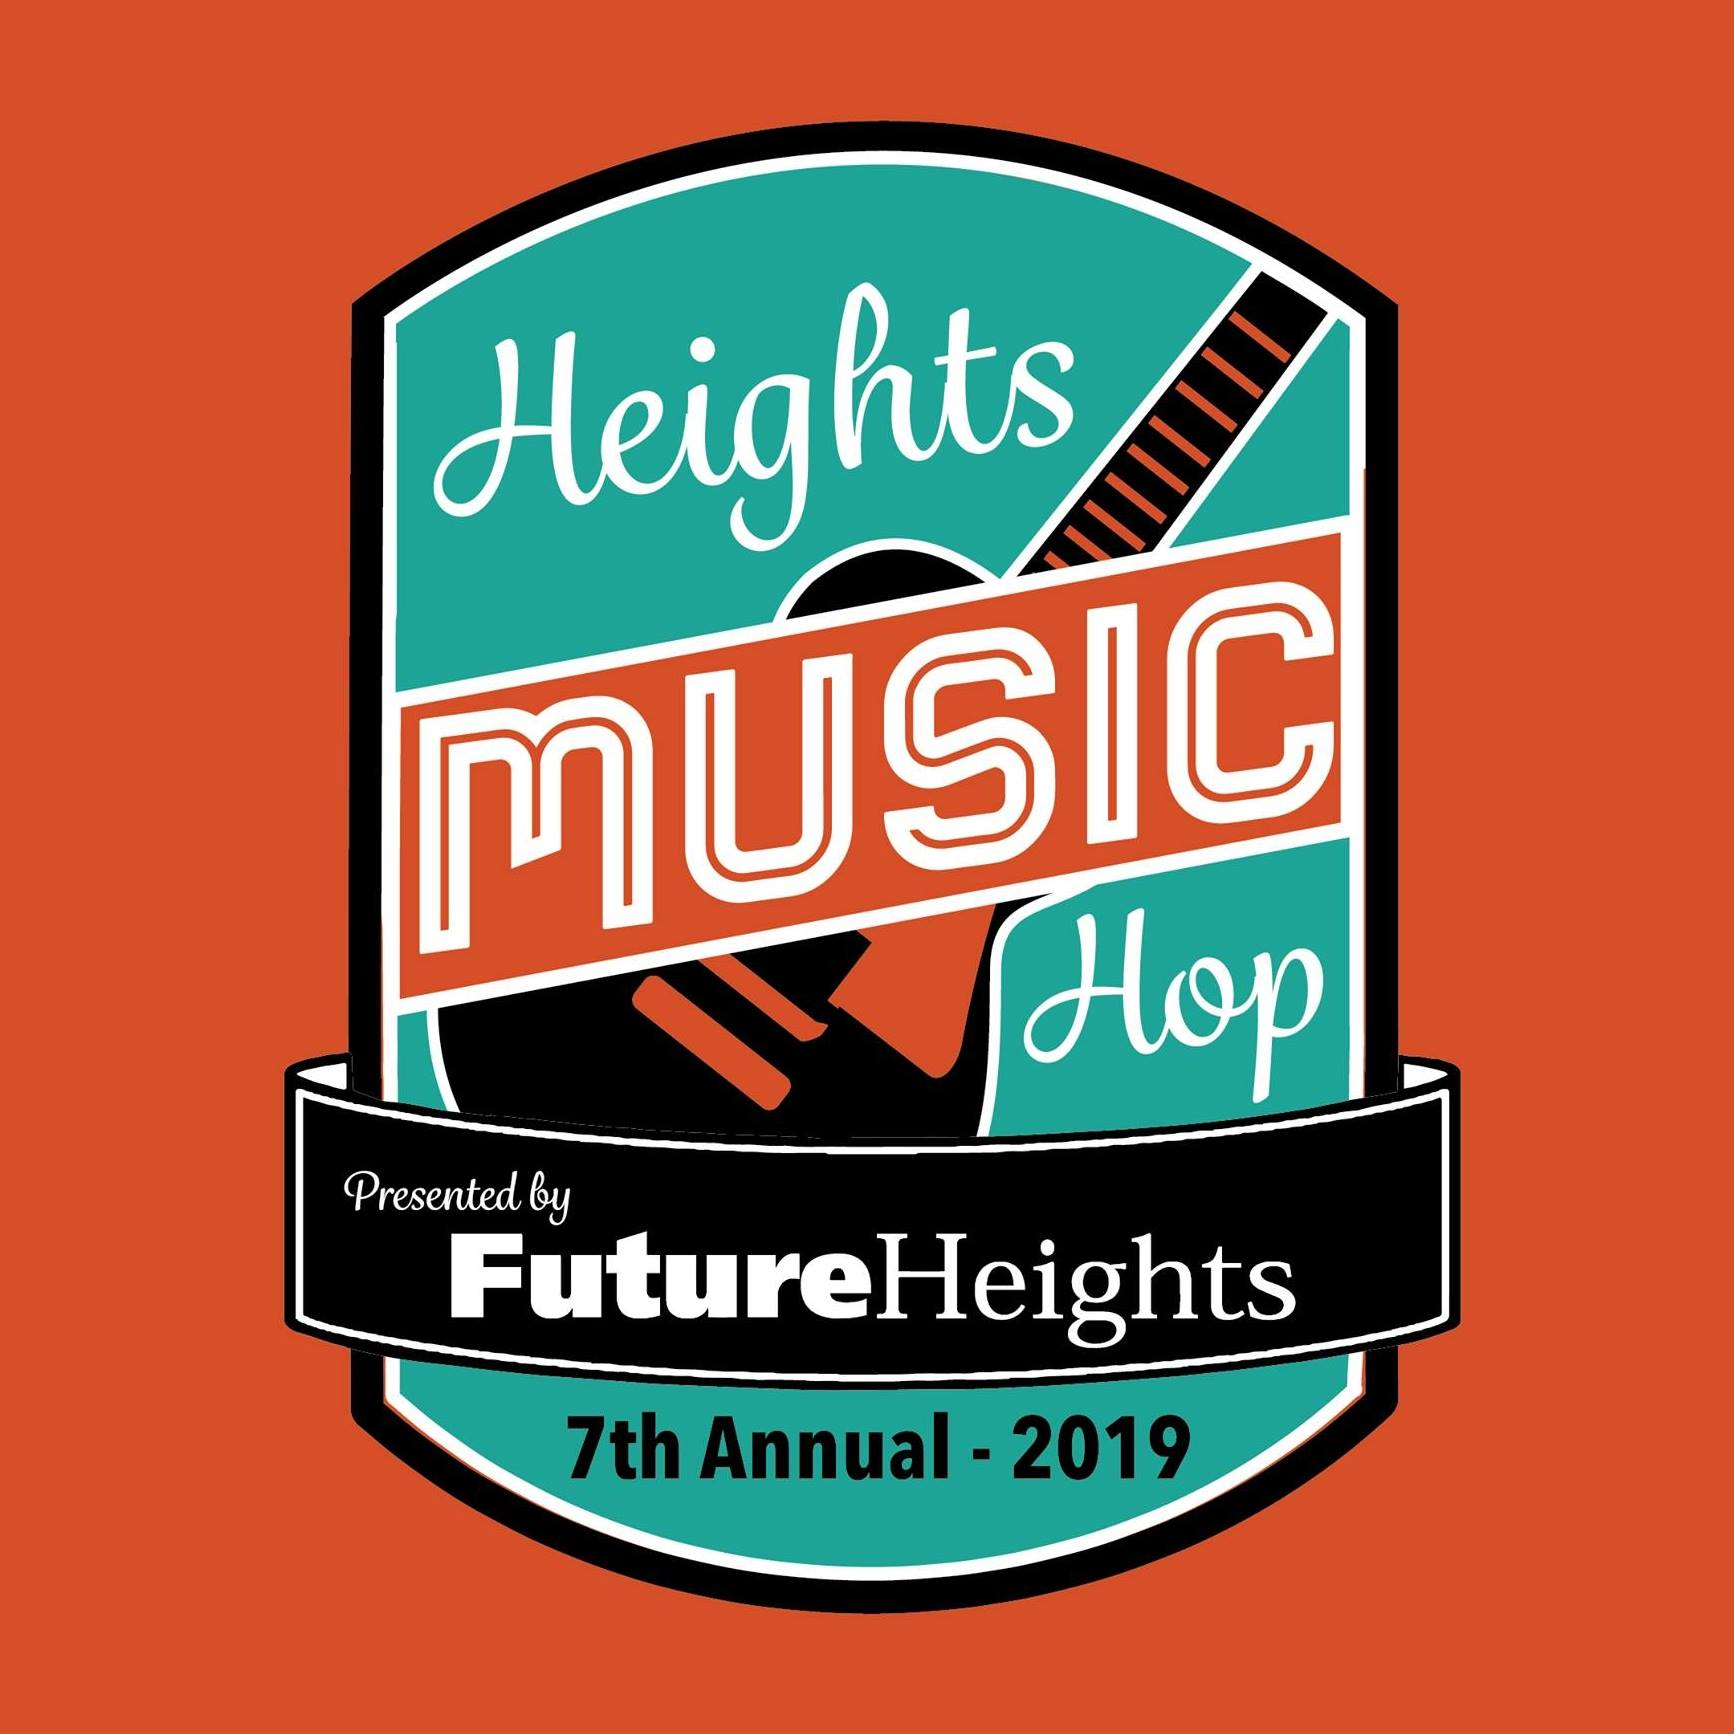 Heights Music Hop